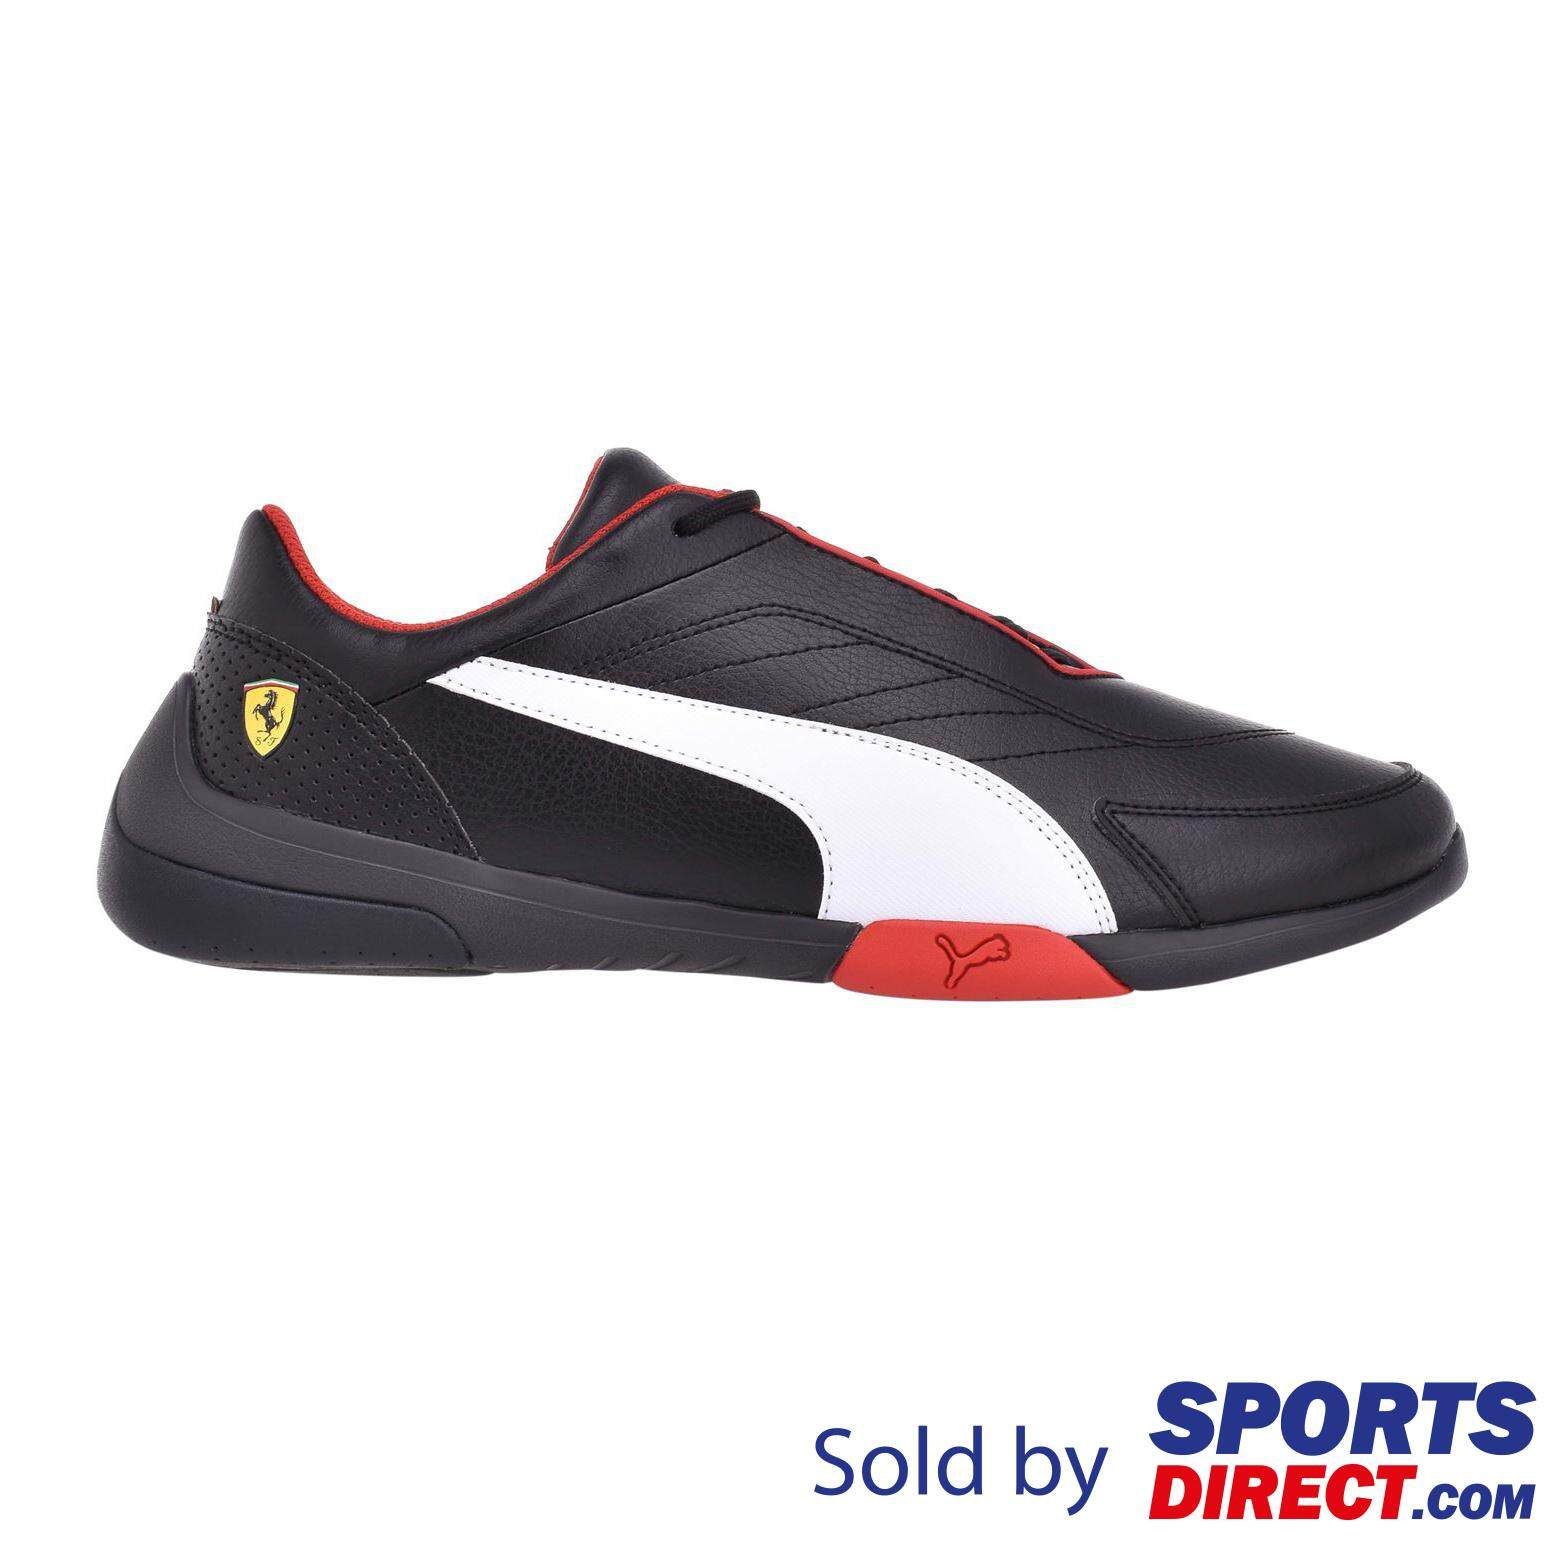 6f92cf028e Puma Men s Sports Shoes - Running Shoes price in Malaysia - Best ...